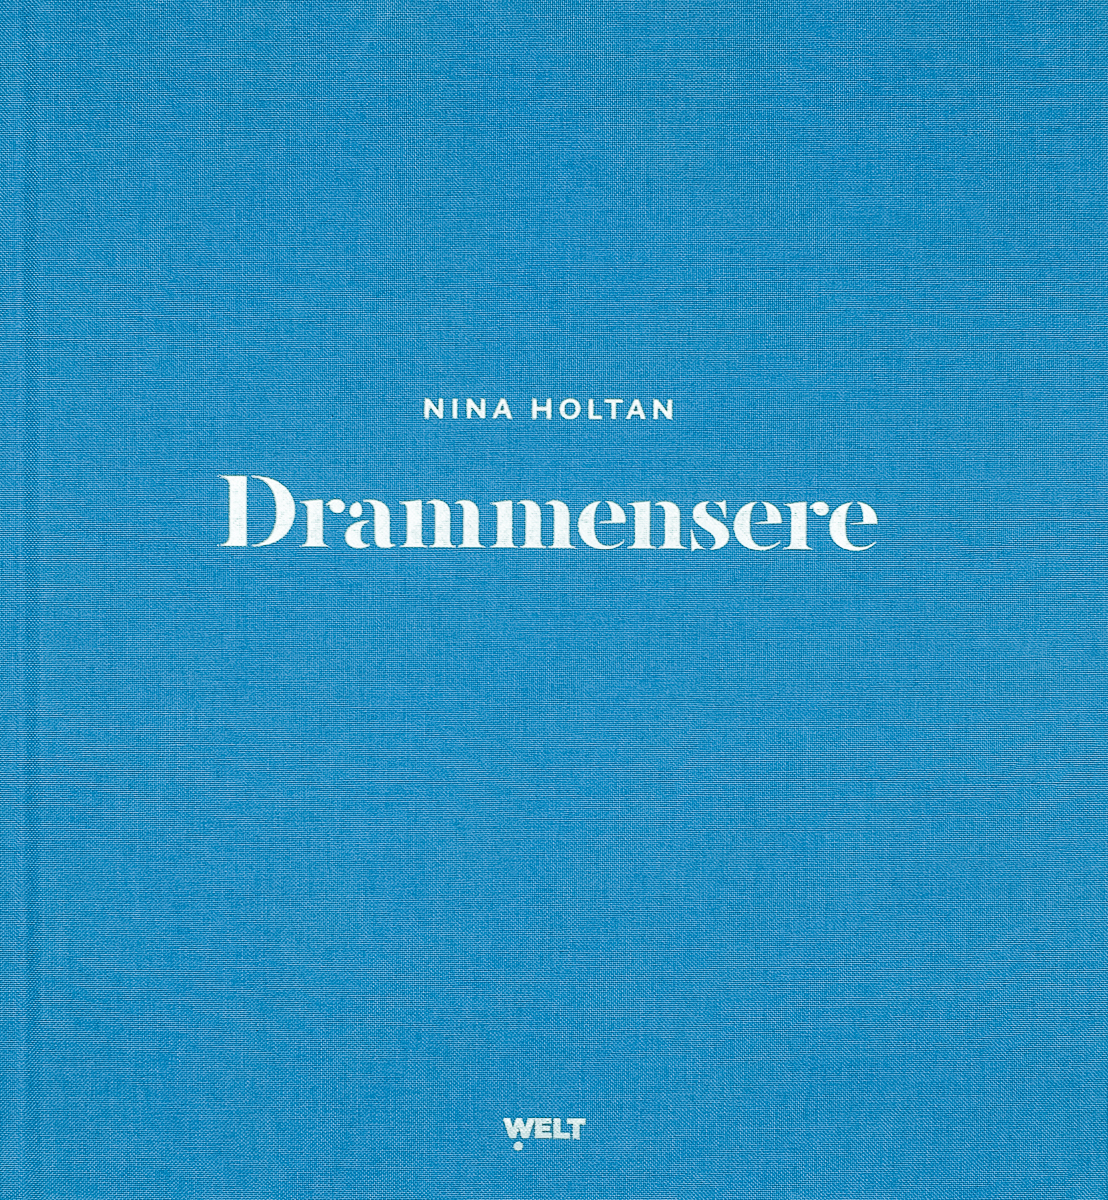 Drammensere   Year: 2018  Publisher: WELT  Edition of 1000 copies  Language: Norwegian  Size: 24 × 26 cm  Pages: 216  ISBN: 978-82-691464-0-0